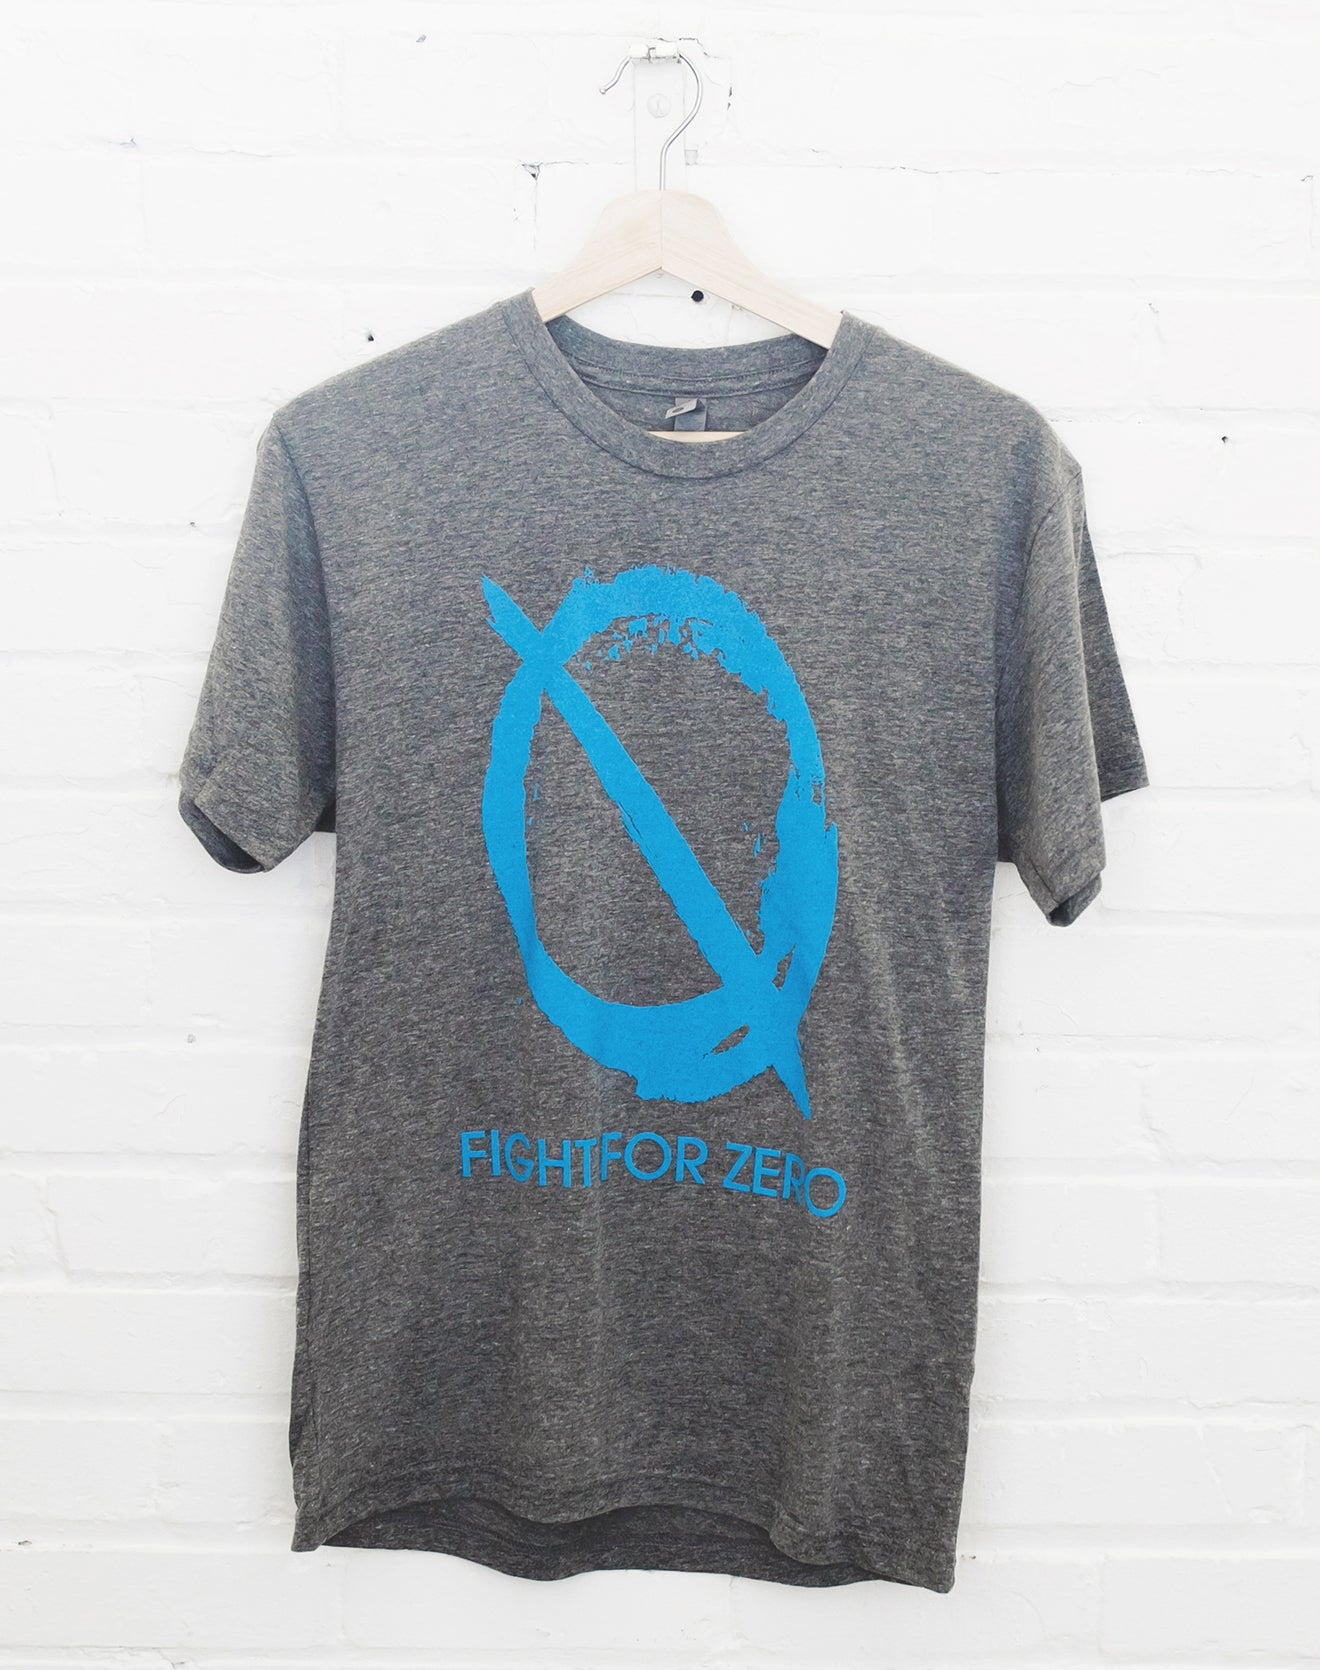 Men's Gray Tee - Fight for Zero